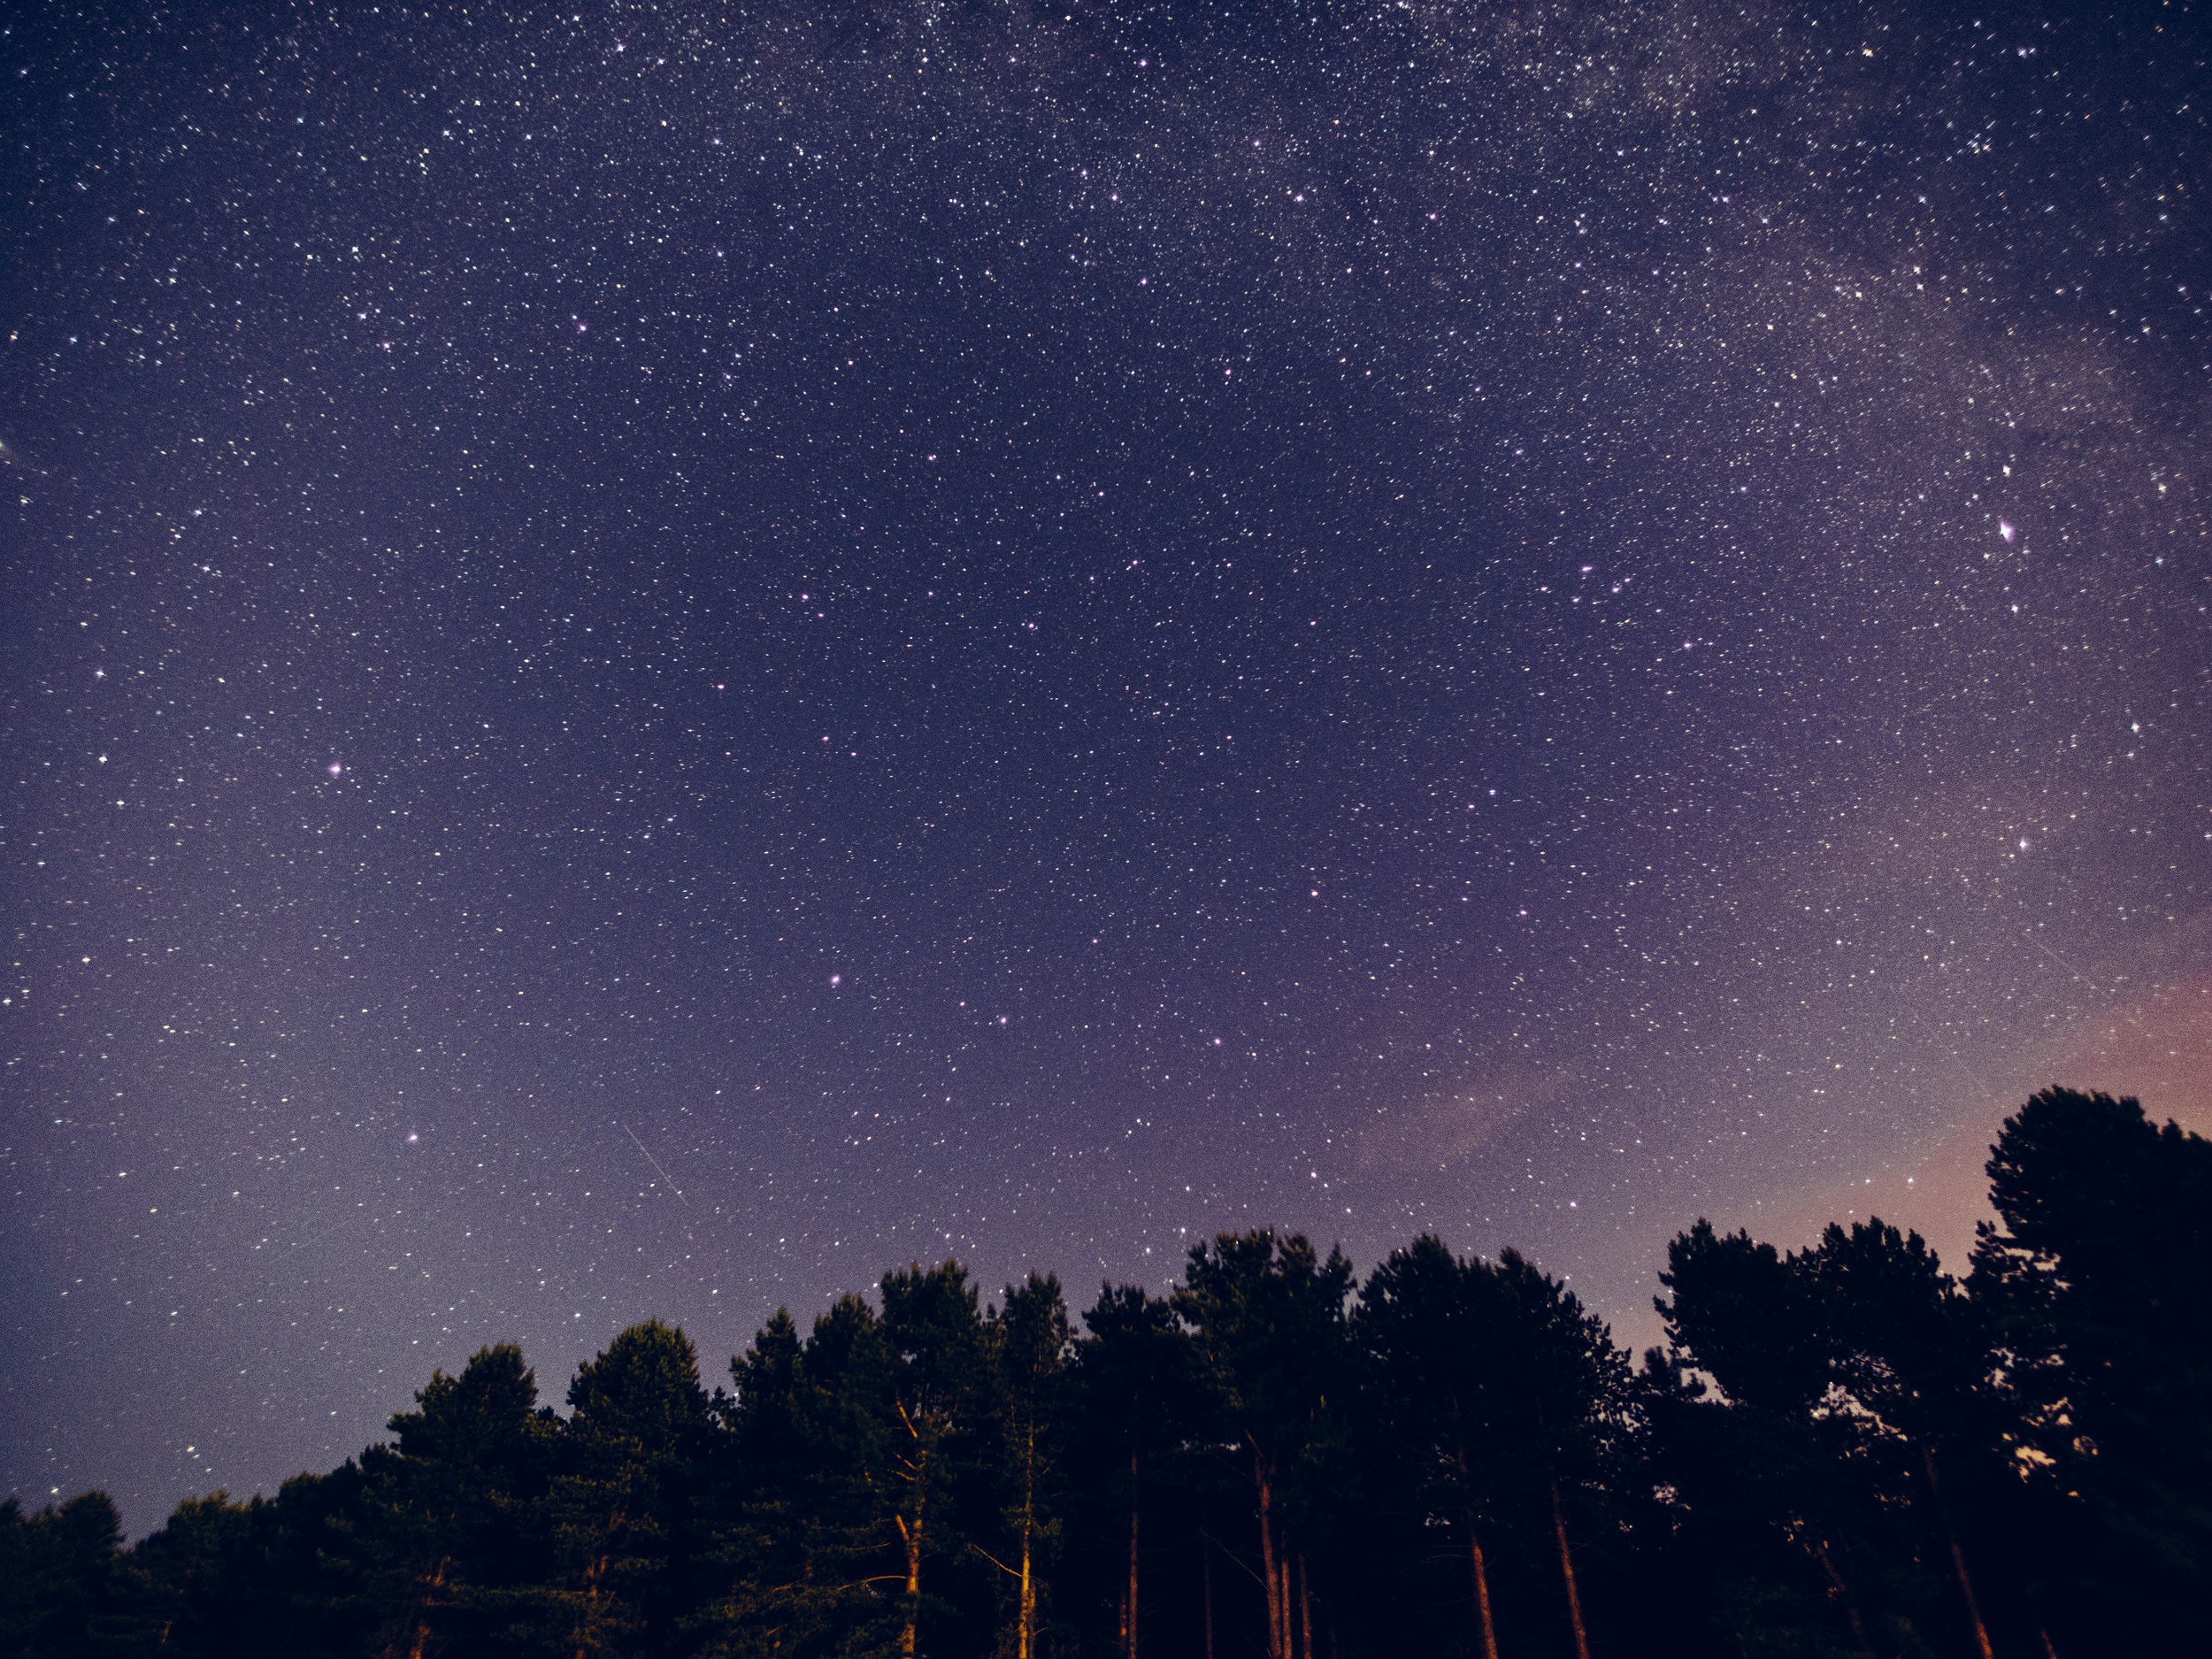 Shooting above the trees and a touch of milky way.